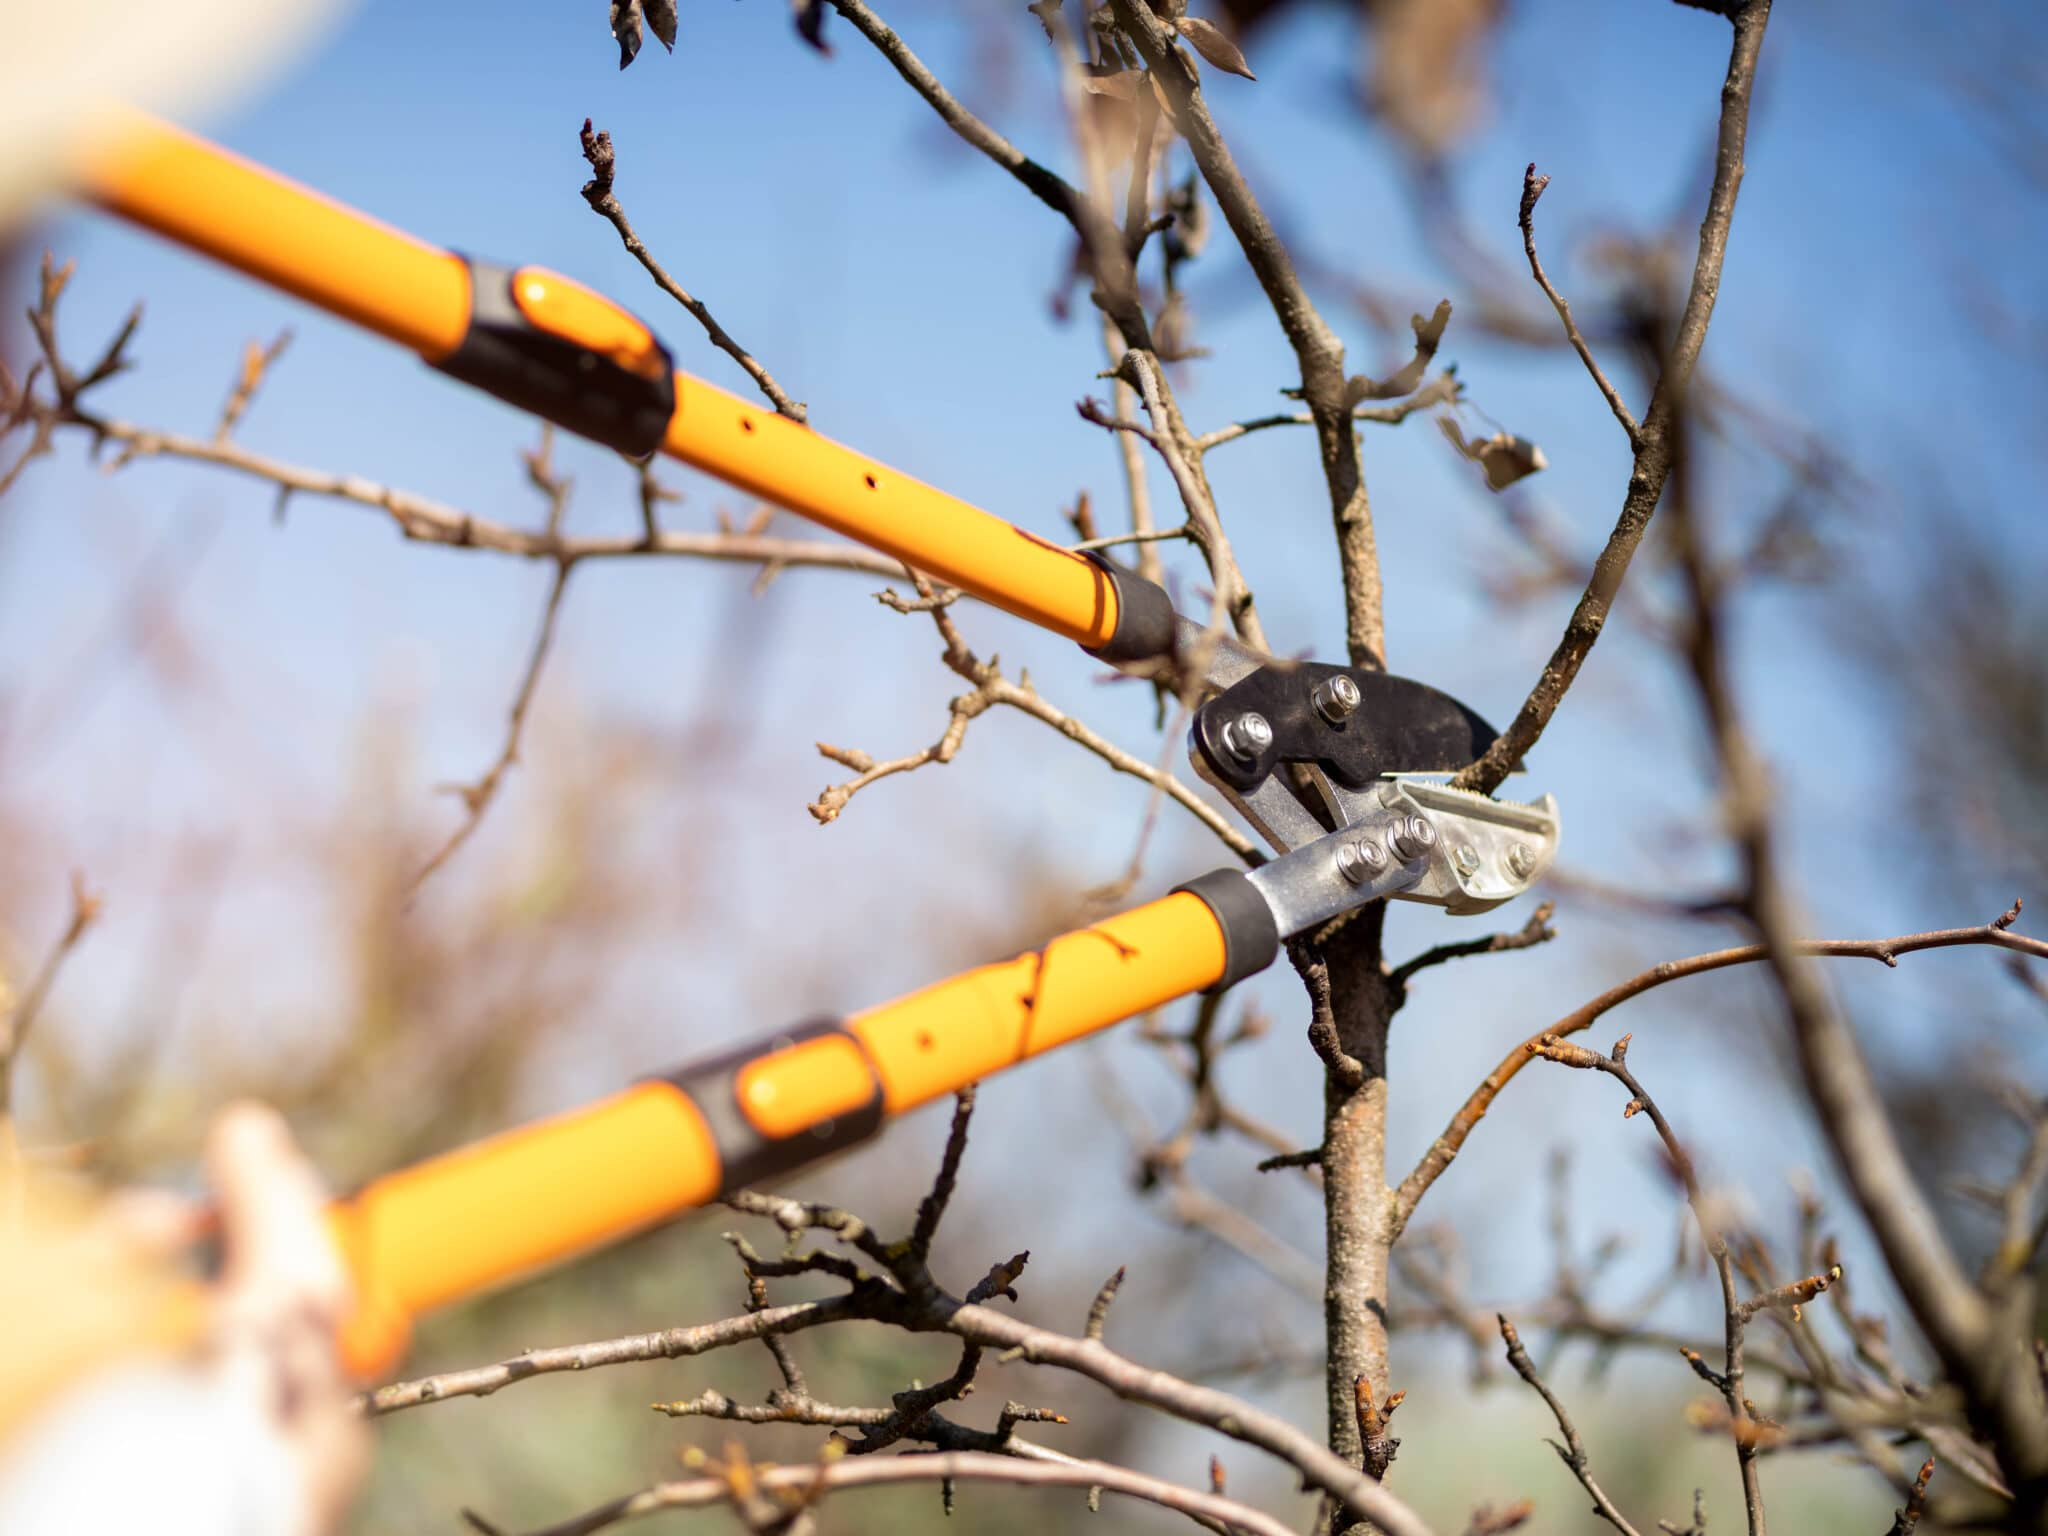 Extended pruning shears, or loppers, being used to cut a larger branch.